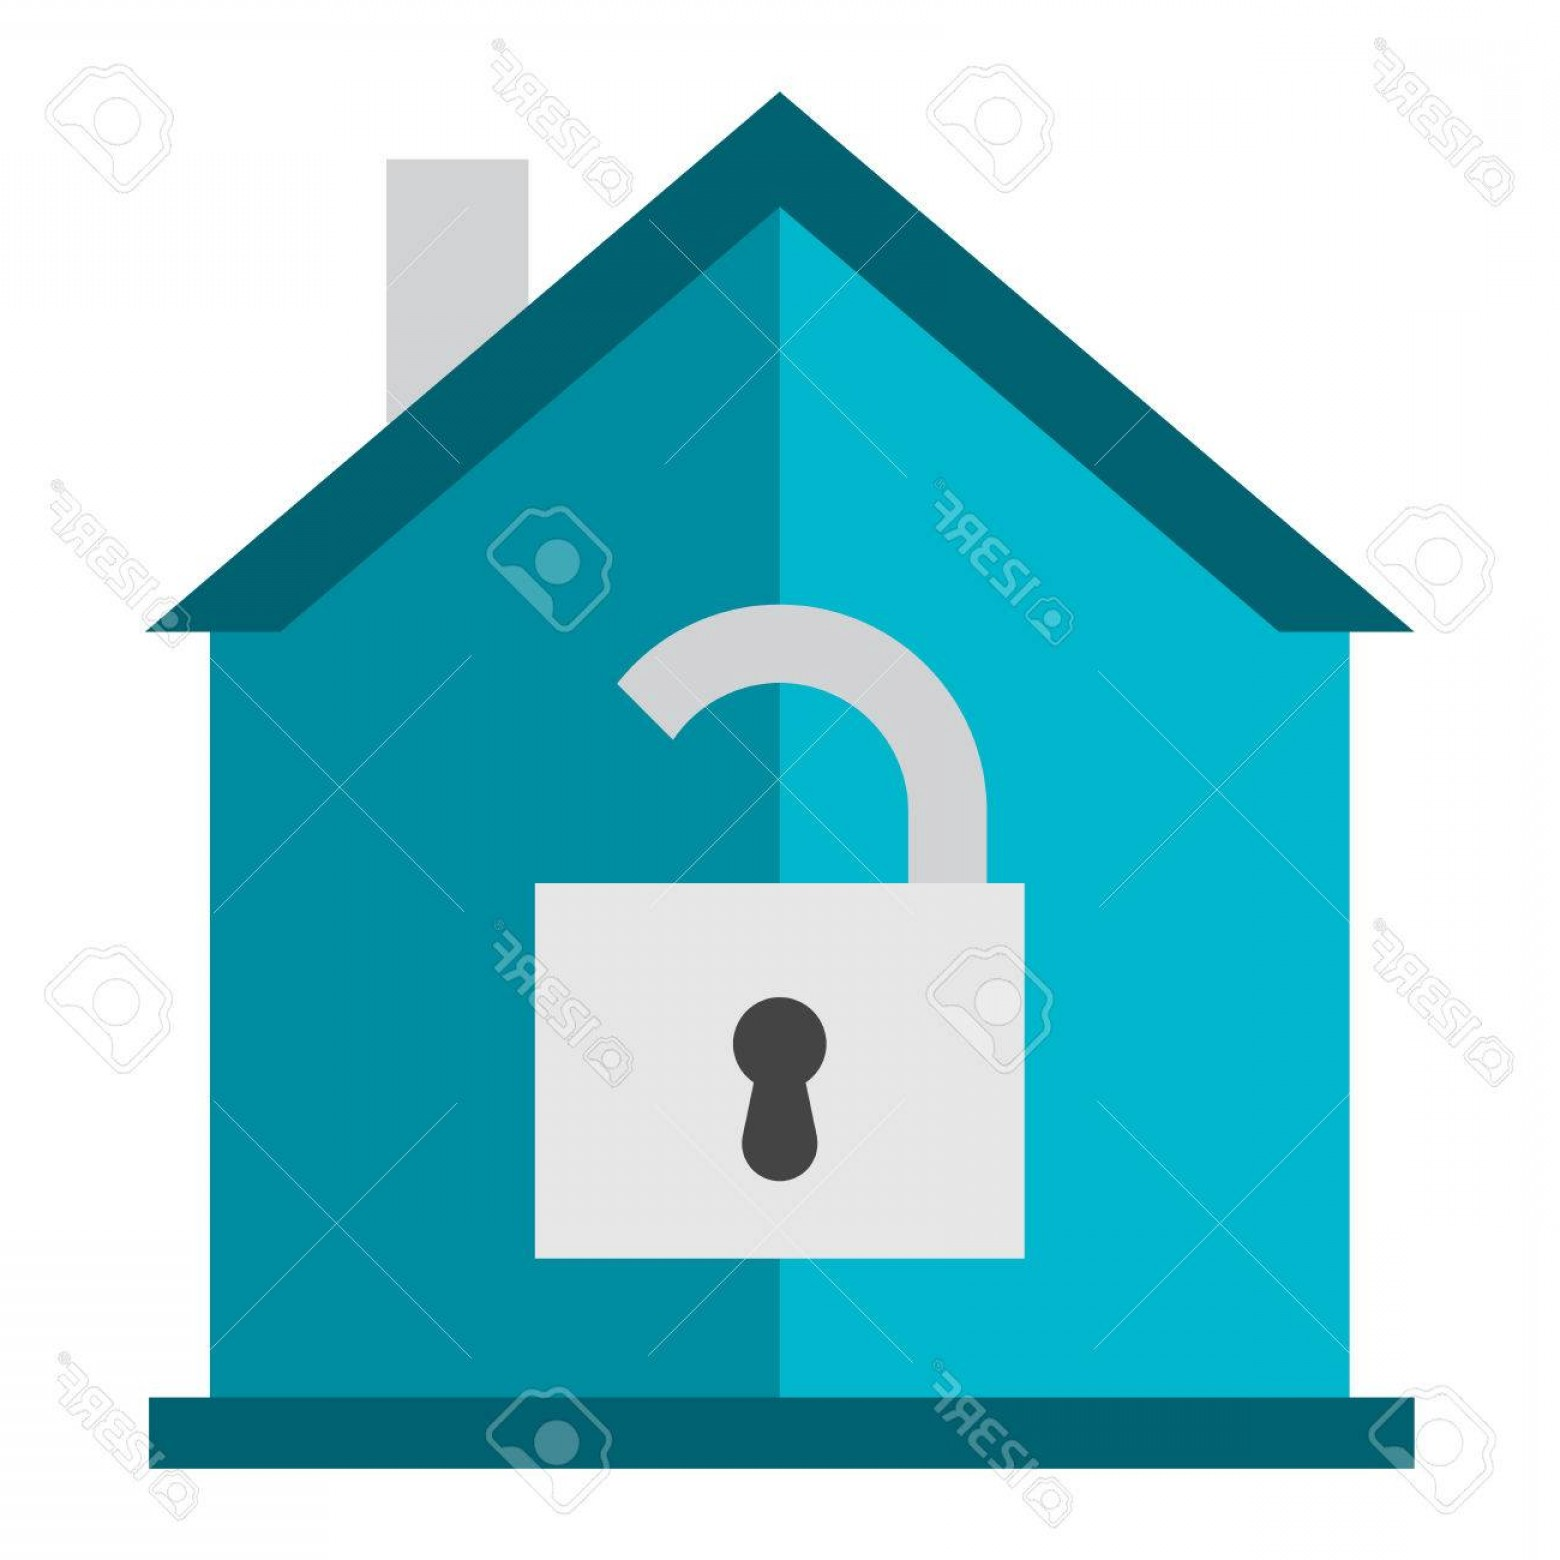 Lock Unlock Icon Vector: Photostock Vector Lock House Icon Vector Design Computer Key Sign Vector Security Isolated Business Home Lock Icon Pro